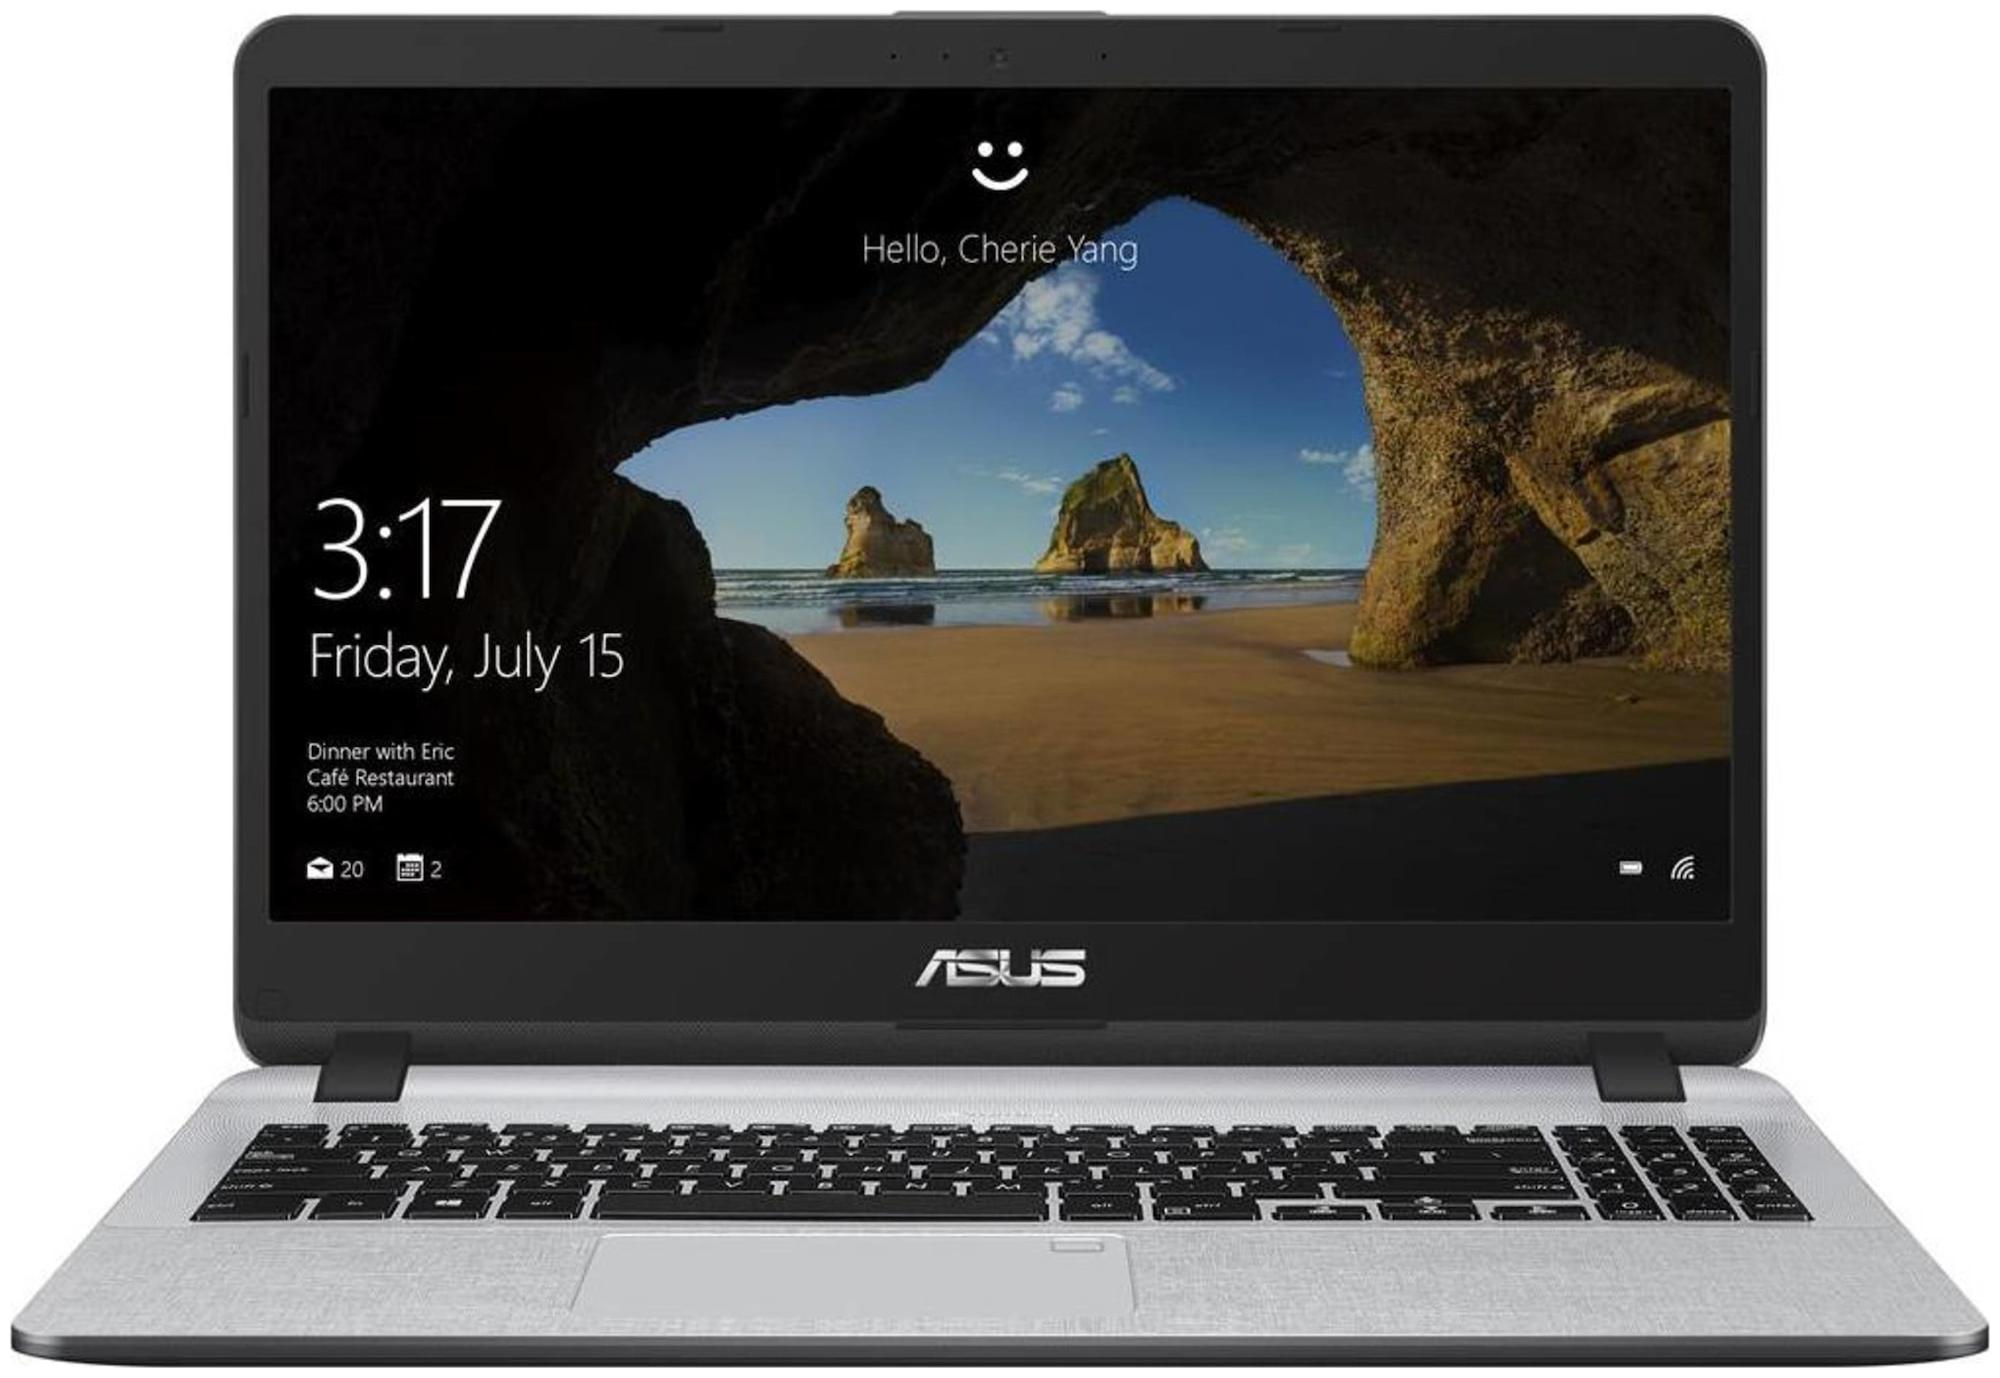 Asus Vivobook X507 (Core i5-8th Gen /8 GB/1 TB/39.62 cm (15.6 Inch) FHD /Windows 10/ 2GB Graphics) UF-EJ092T Thin & Light Laptop (Grey, 1.68 Kg)